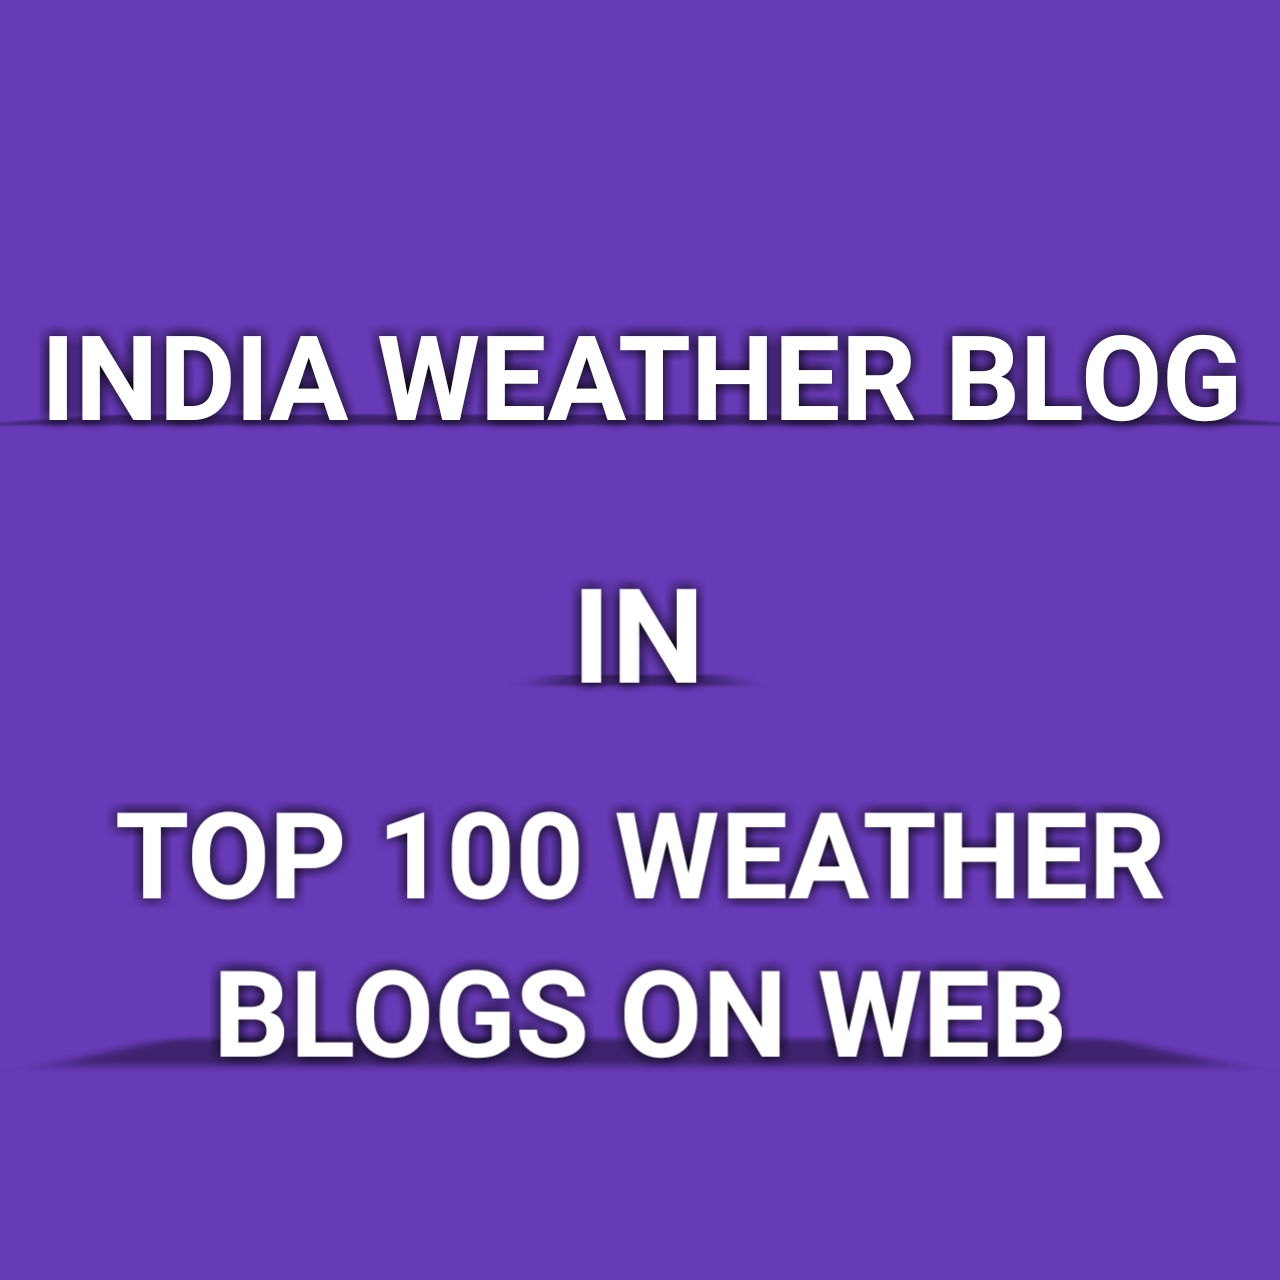 India Weather Blog in the Top 100 Weather Blogs on the web. Click below image for detail info.